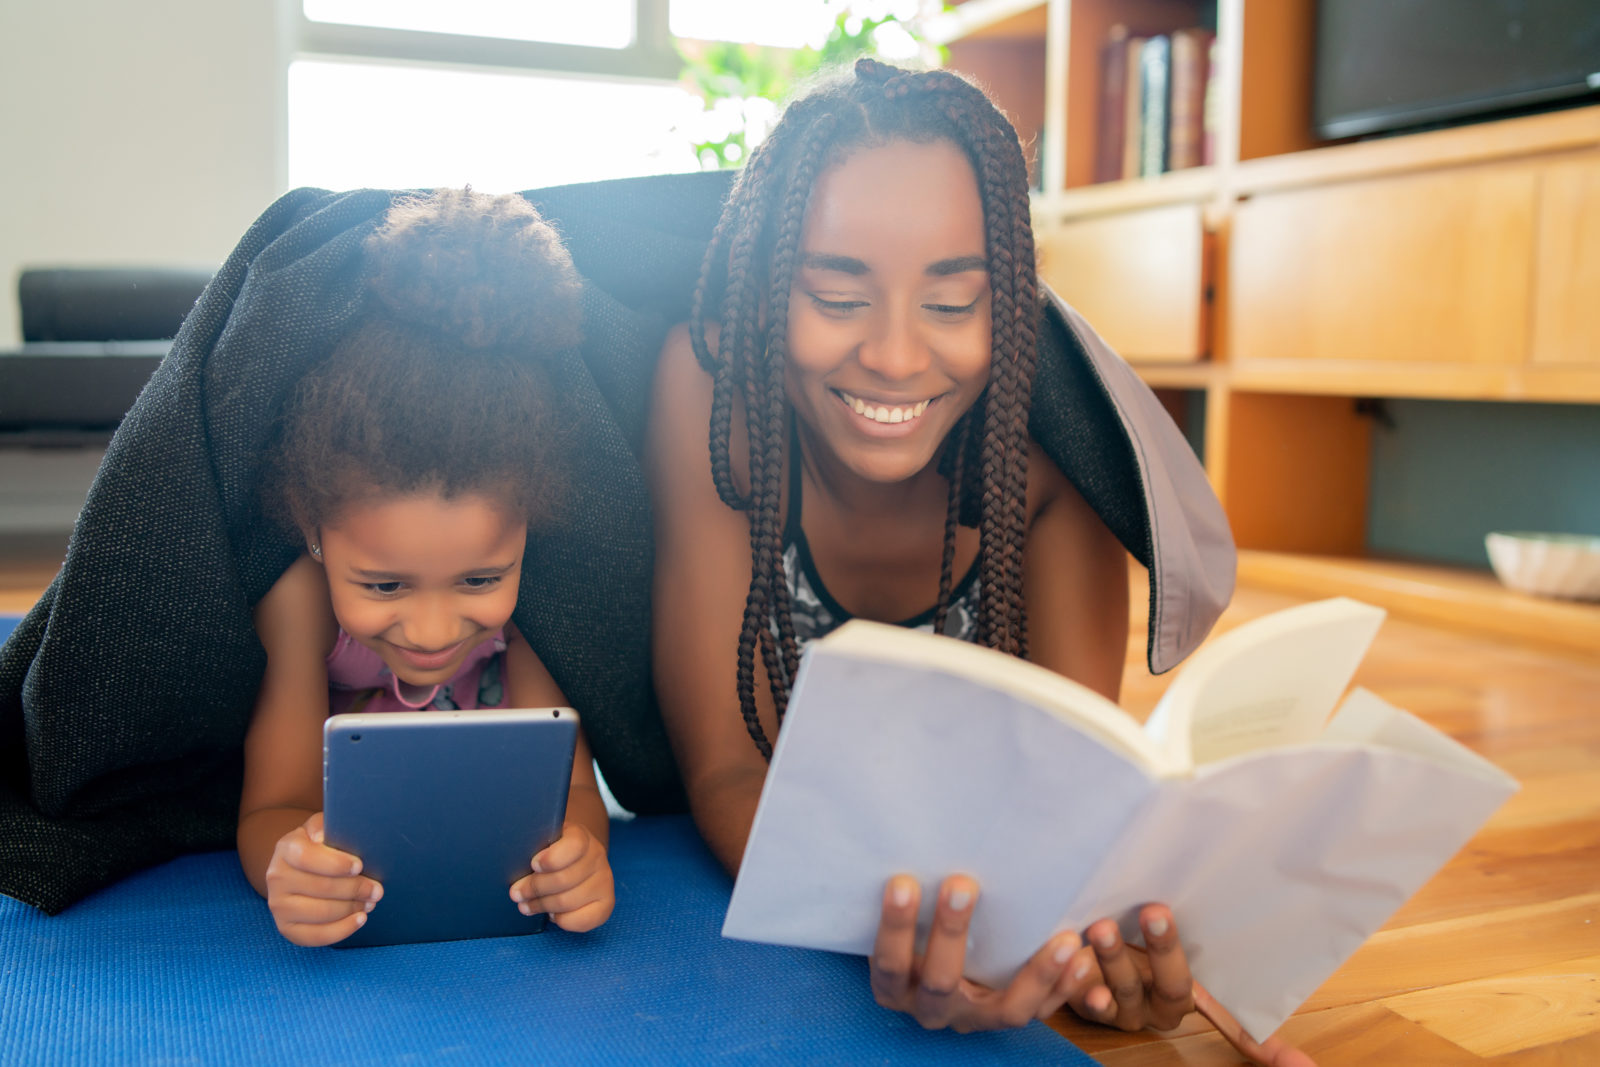 Read These Parenting Books Suggested by Kim Feeney at Butterfly Beginnings Play Therapy in Davenport, Iowa